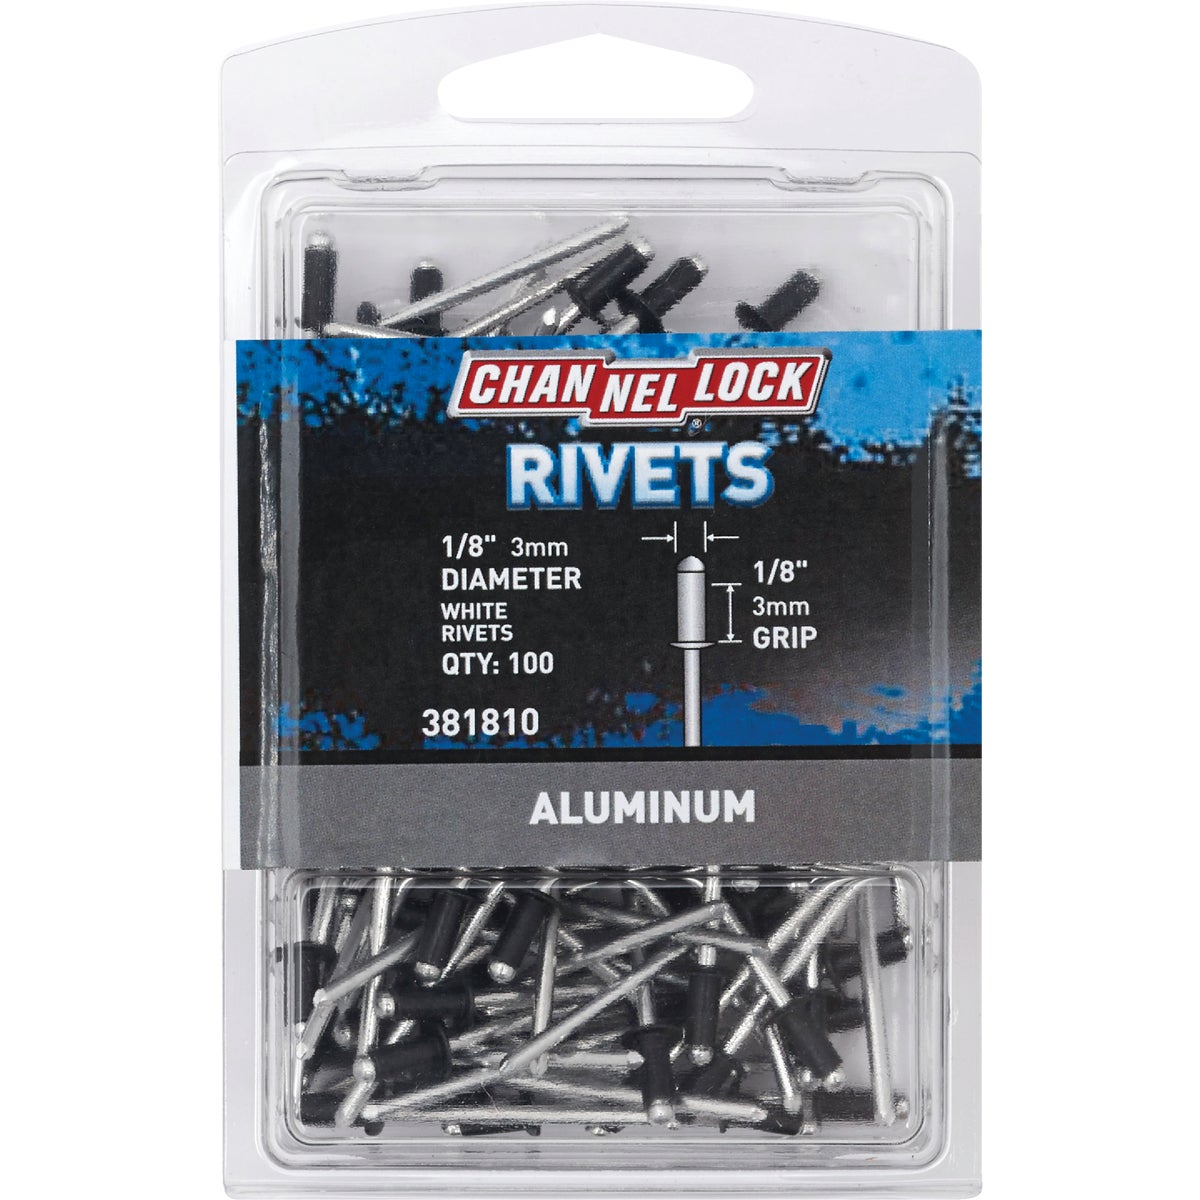 1/8X1/8 WHT ALUM RIVET - 381810 by Do it Best